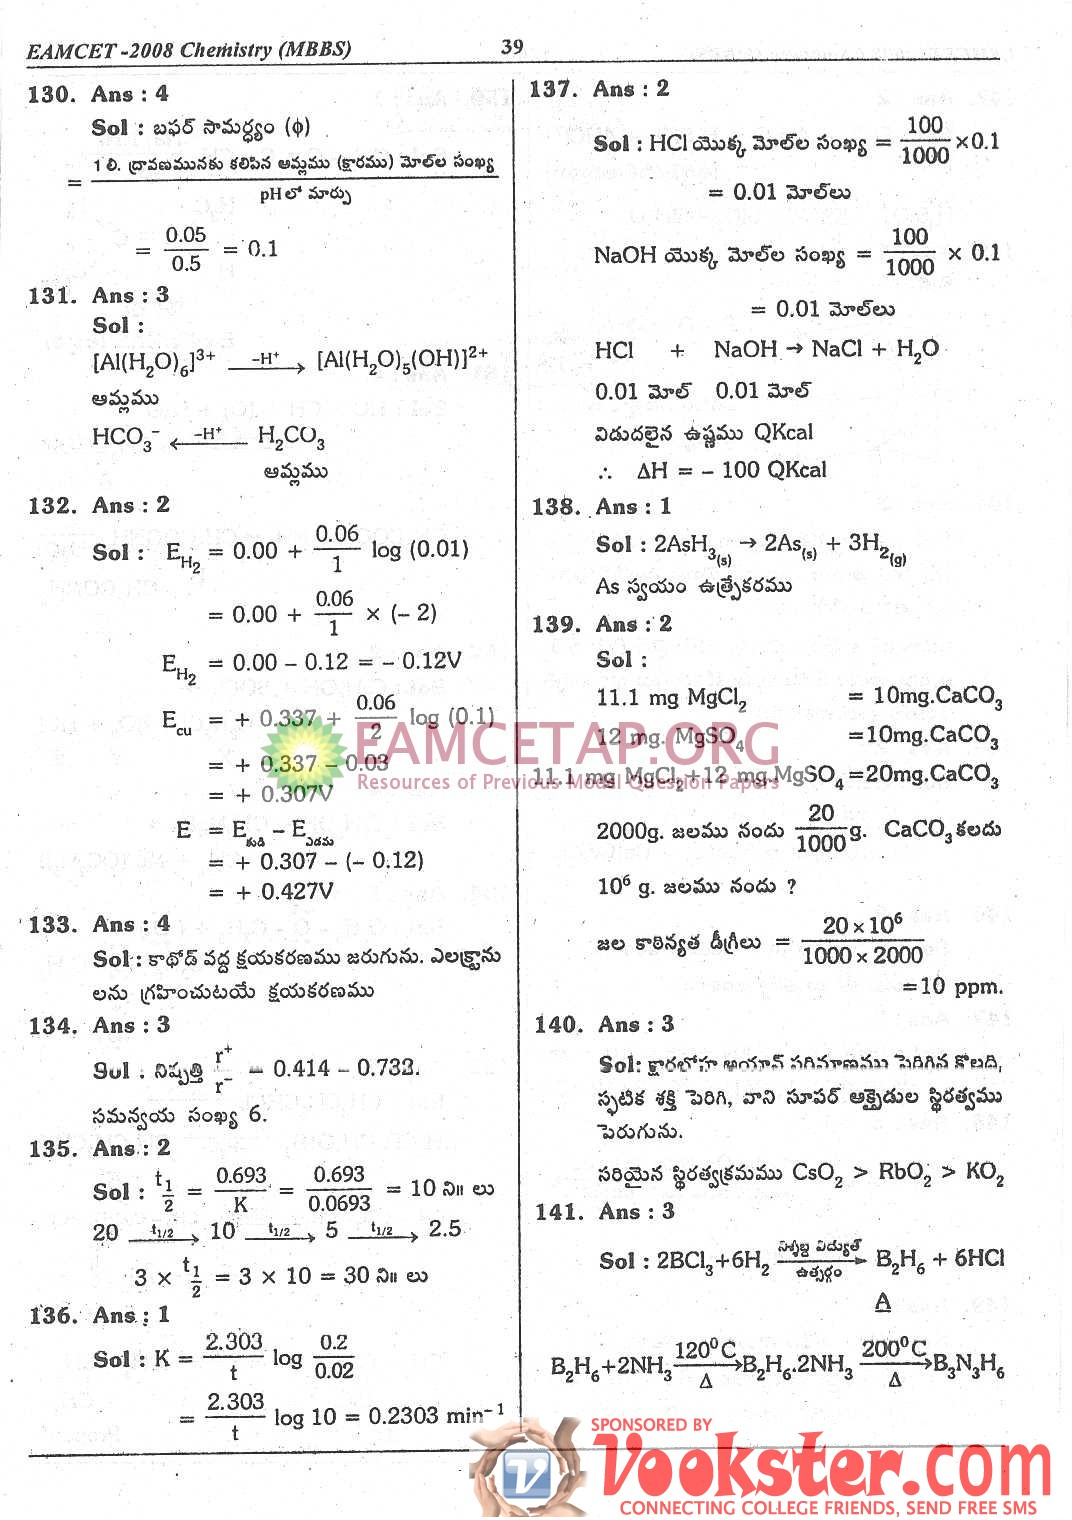 TS EAMCET Previous Year Question Papers (2000-15) Download Free PDF